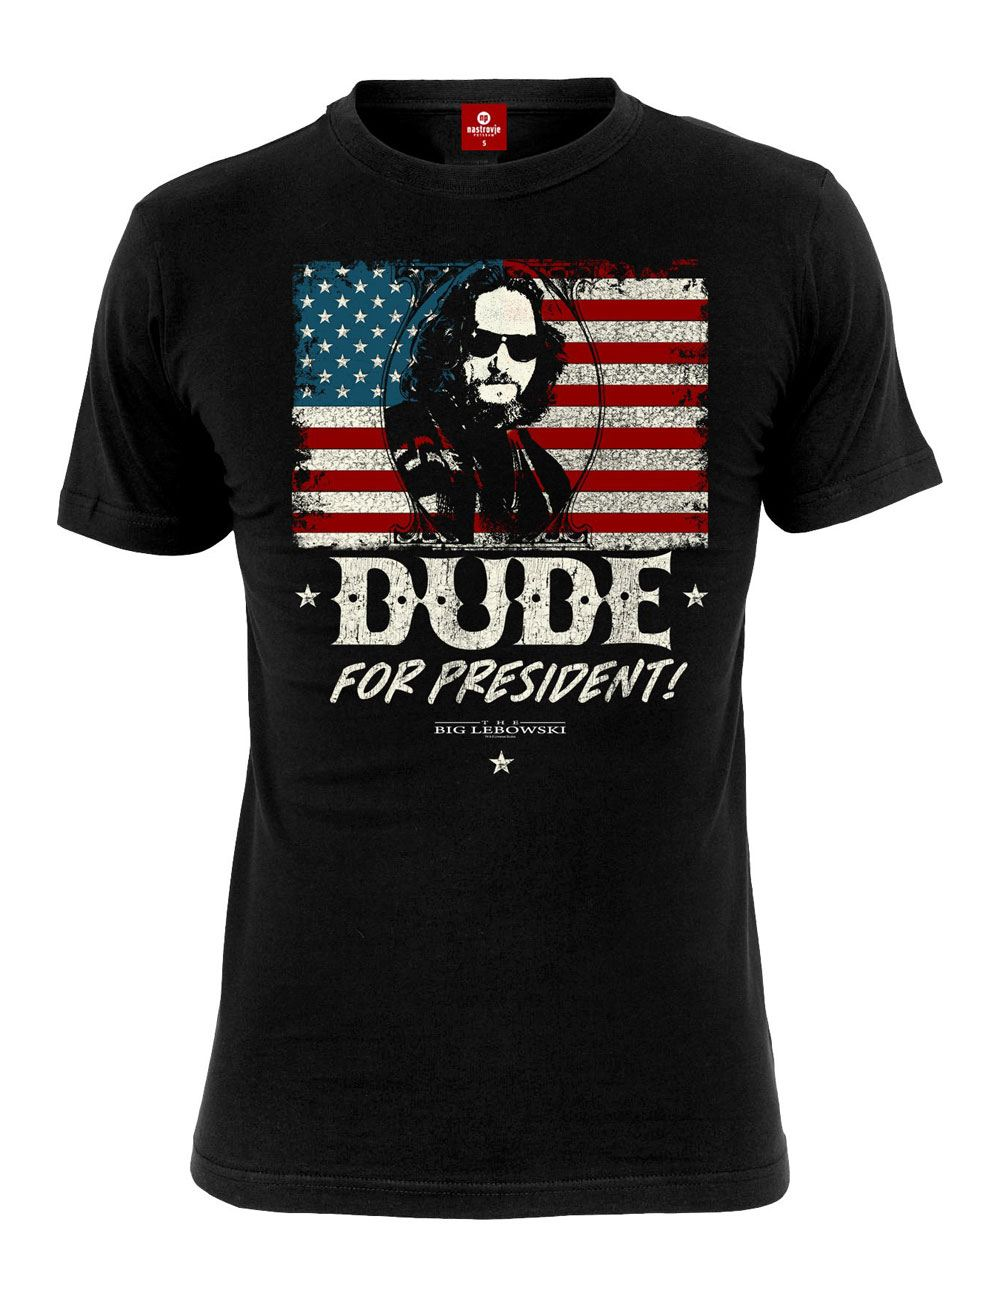 The Big Lebowski T-Shirt Dude for President Size M